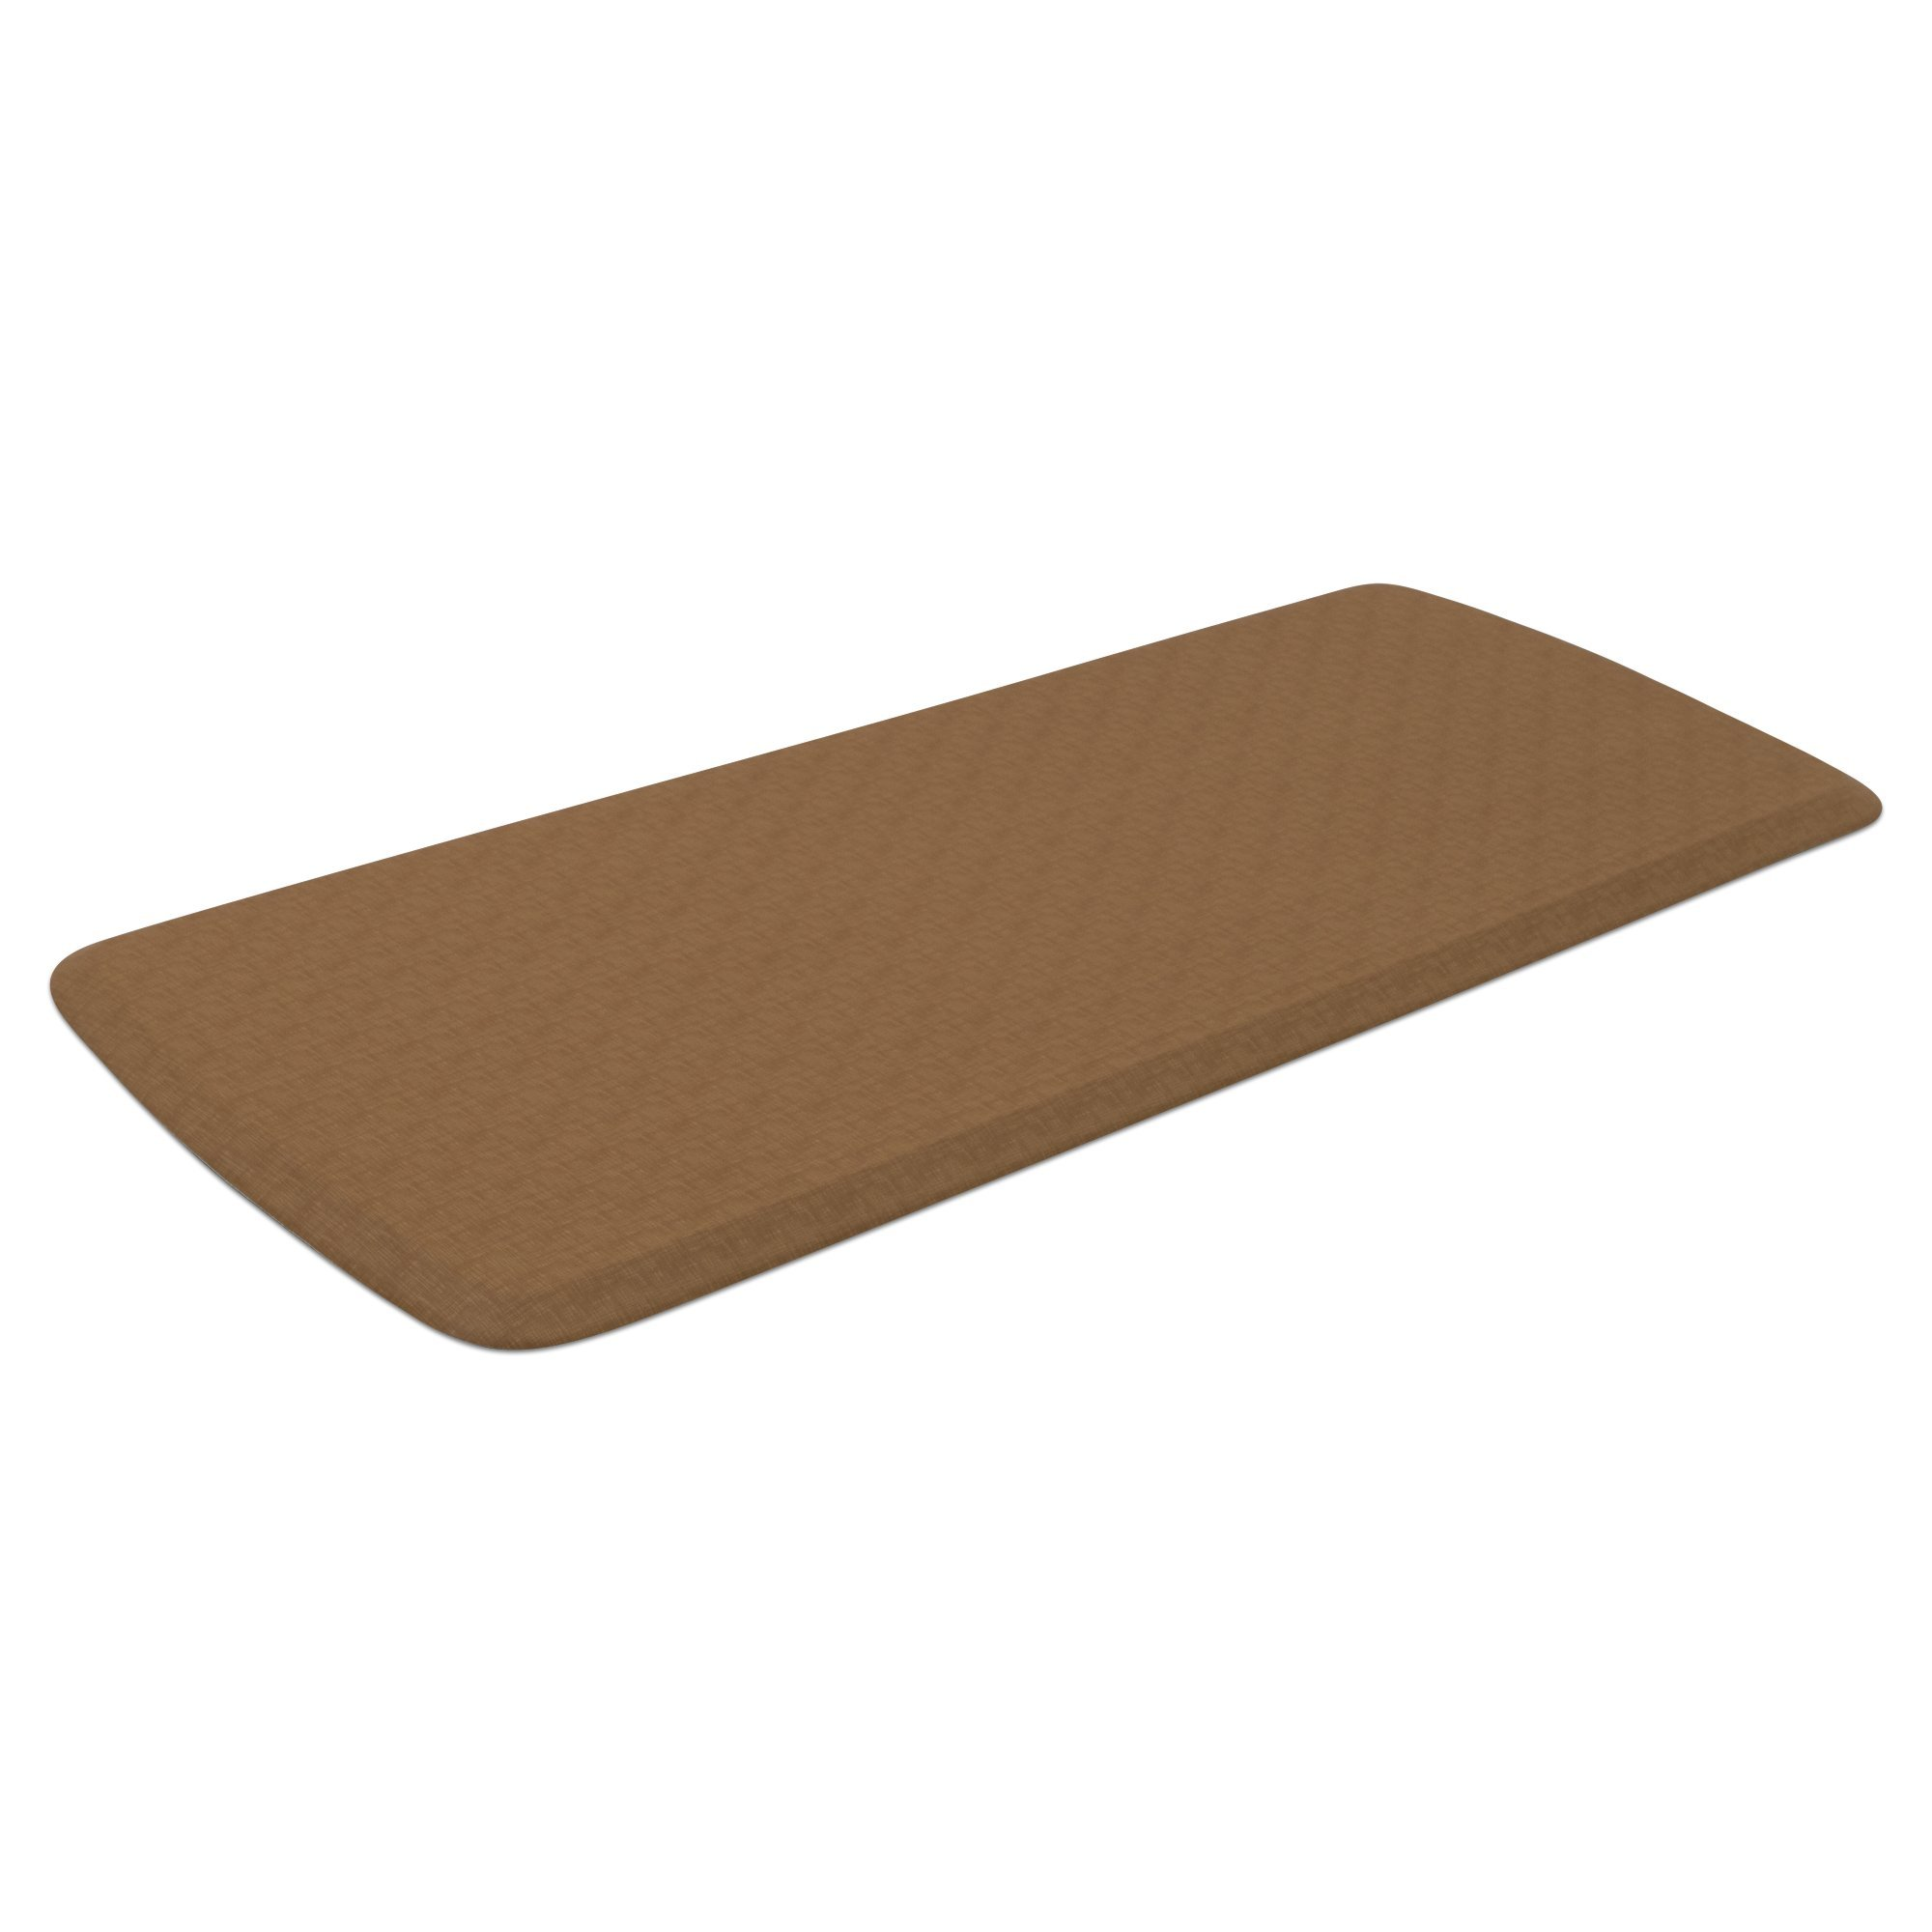 "GelPro Elite Premier Anti-Fatigue Kitchen Comfort Floor Mat, 20x48"", Linen Khaki Stain Resistant Surface with Therapeutic Gel and Energy-return Foam for Health and Wellness by GelPro (Image #2)"